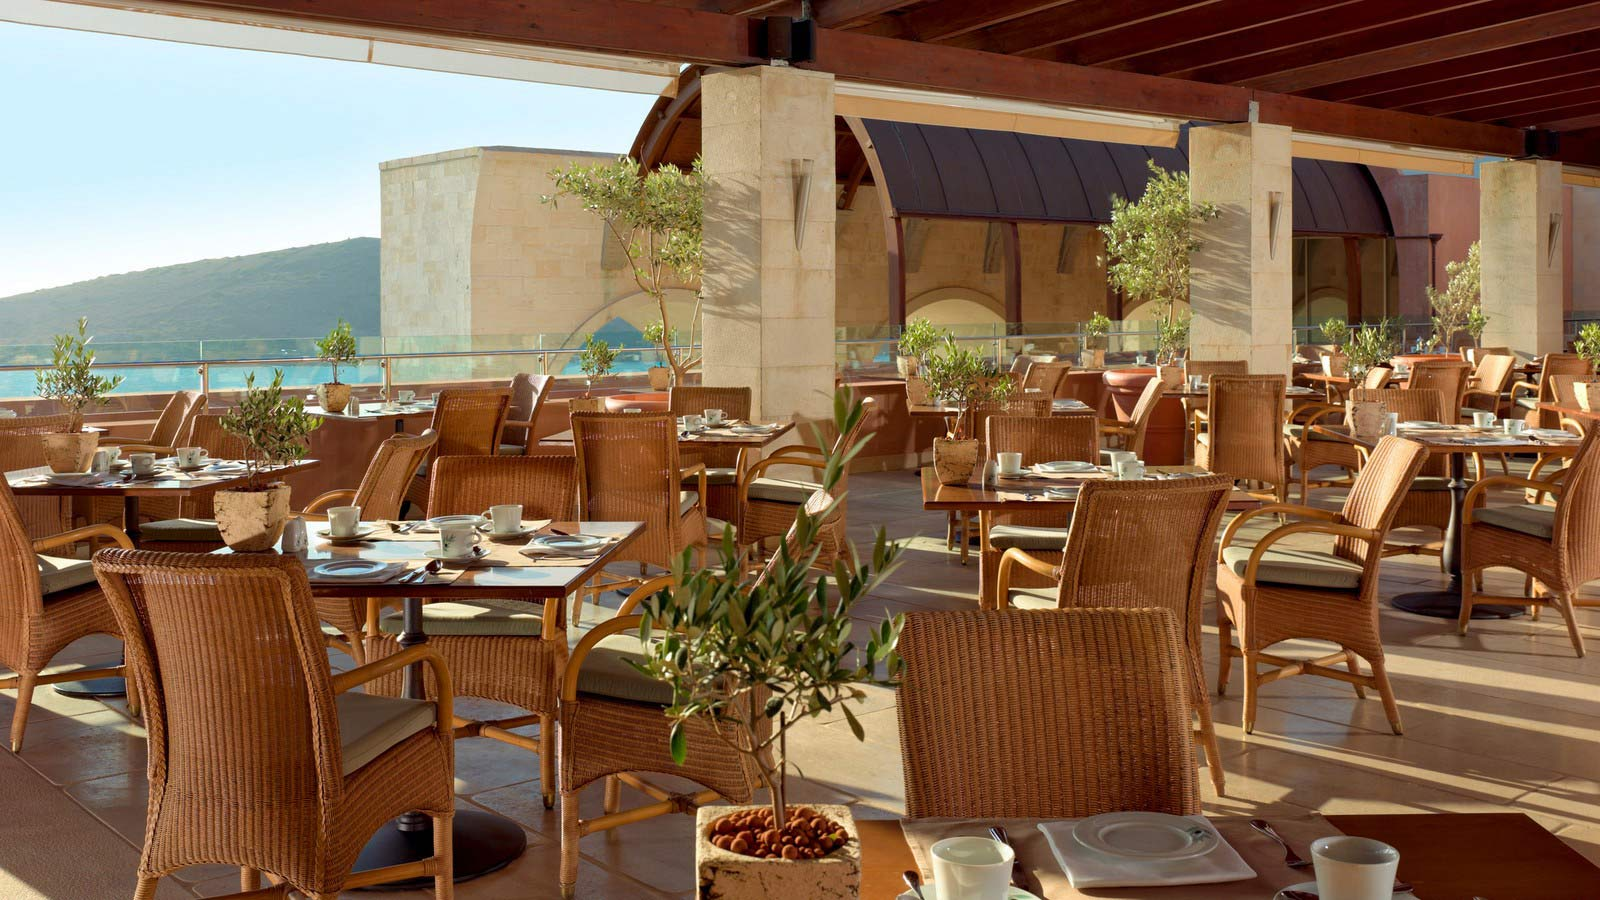 Olea Restaurant - Blue Palace resort and spa- Elounda, Crete, Greece